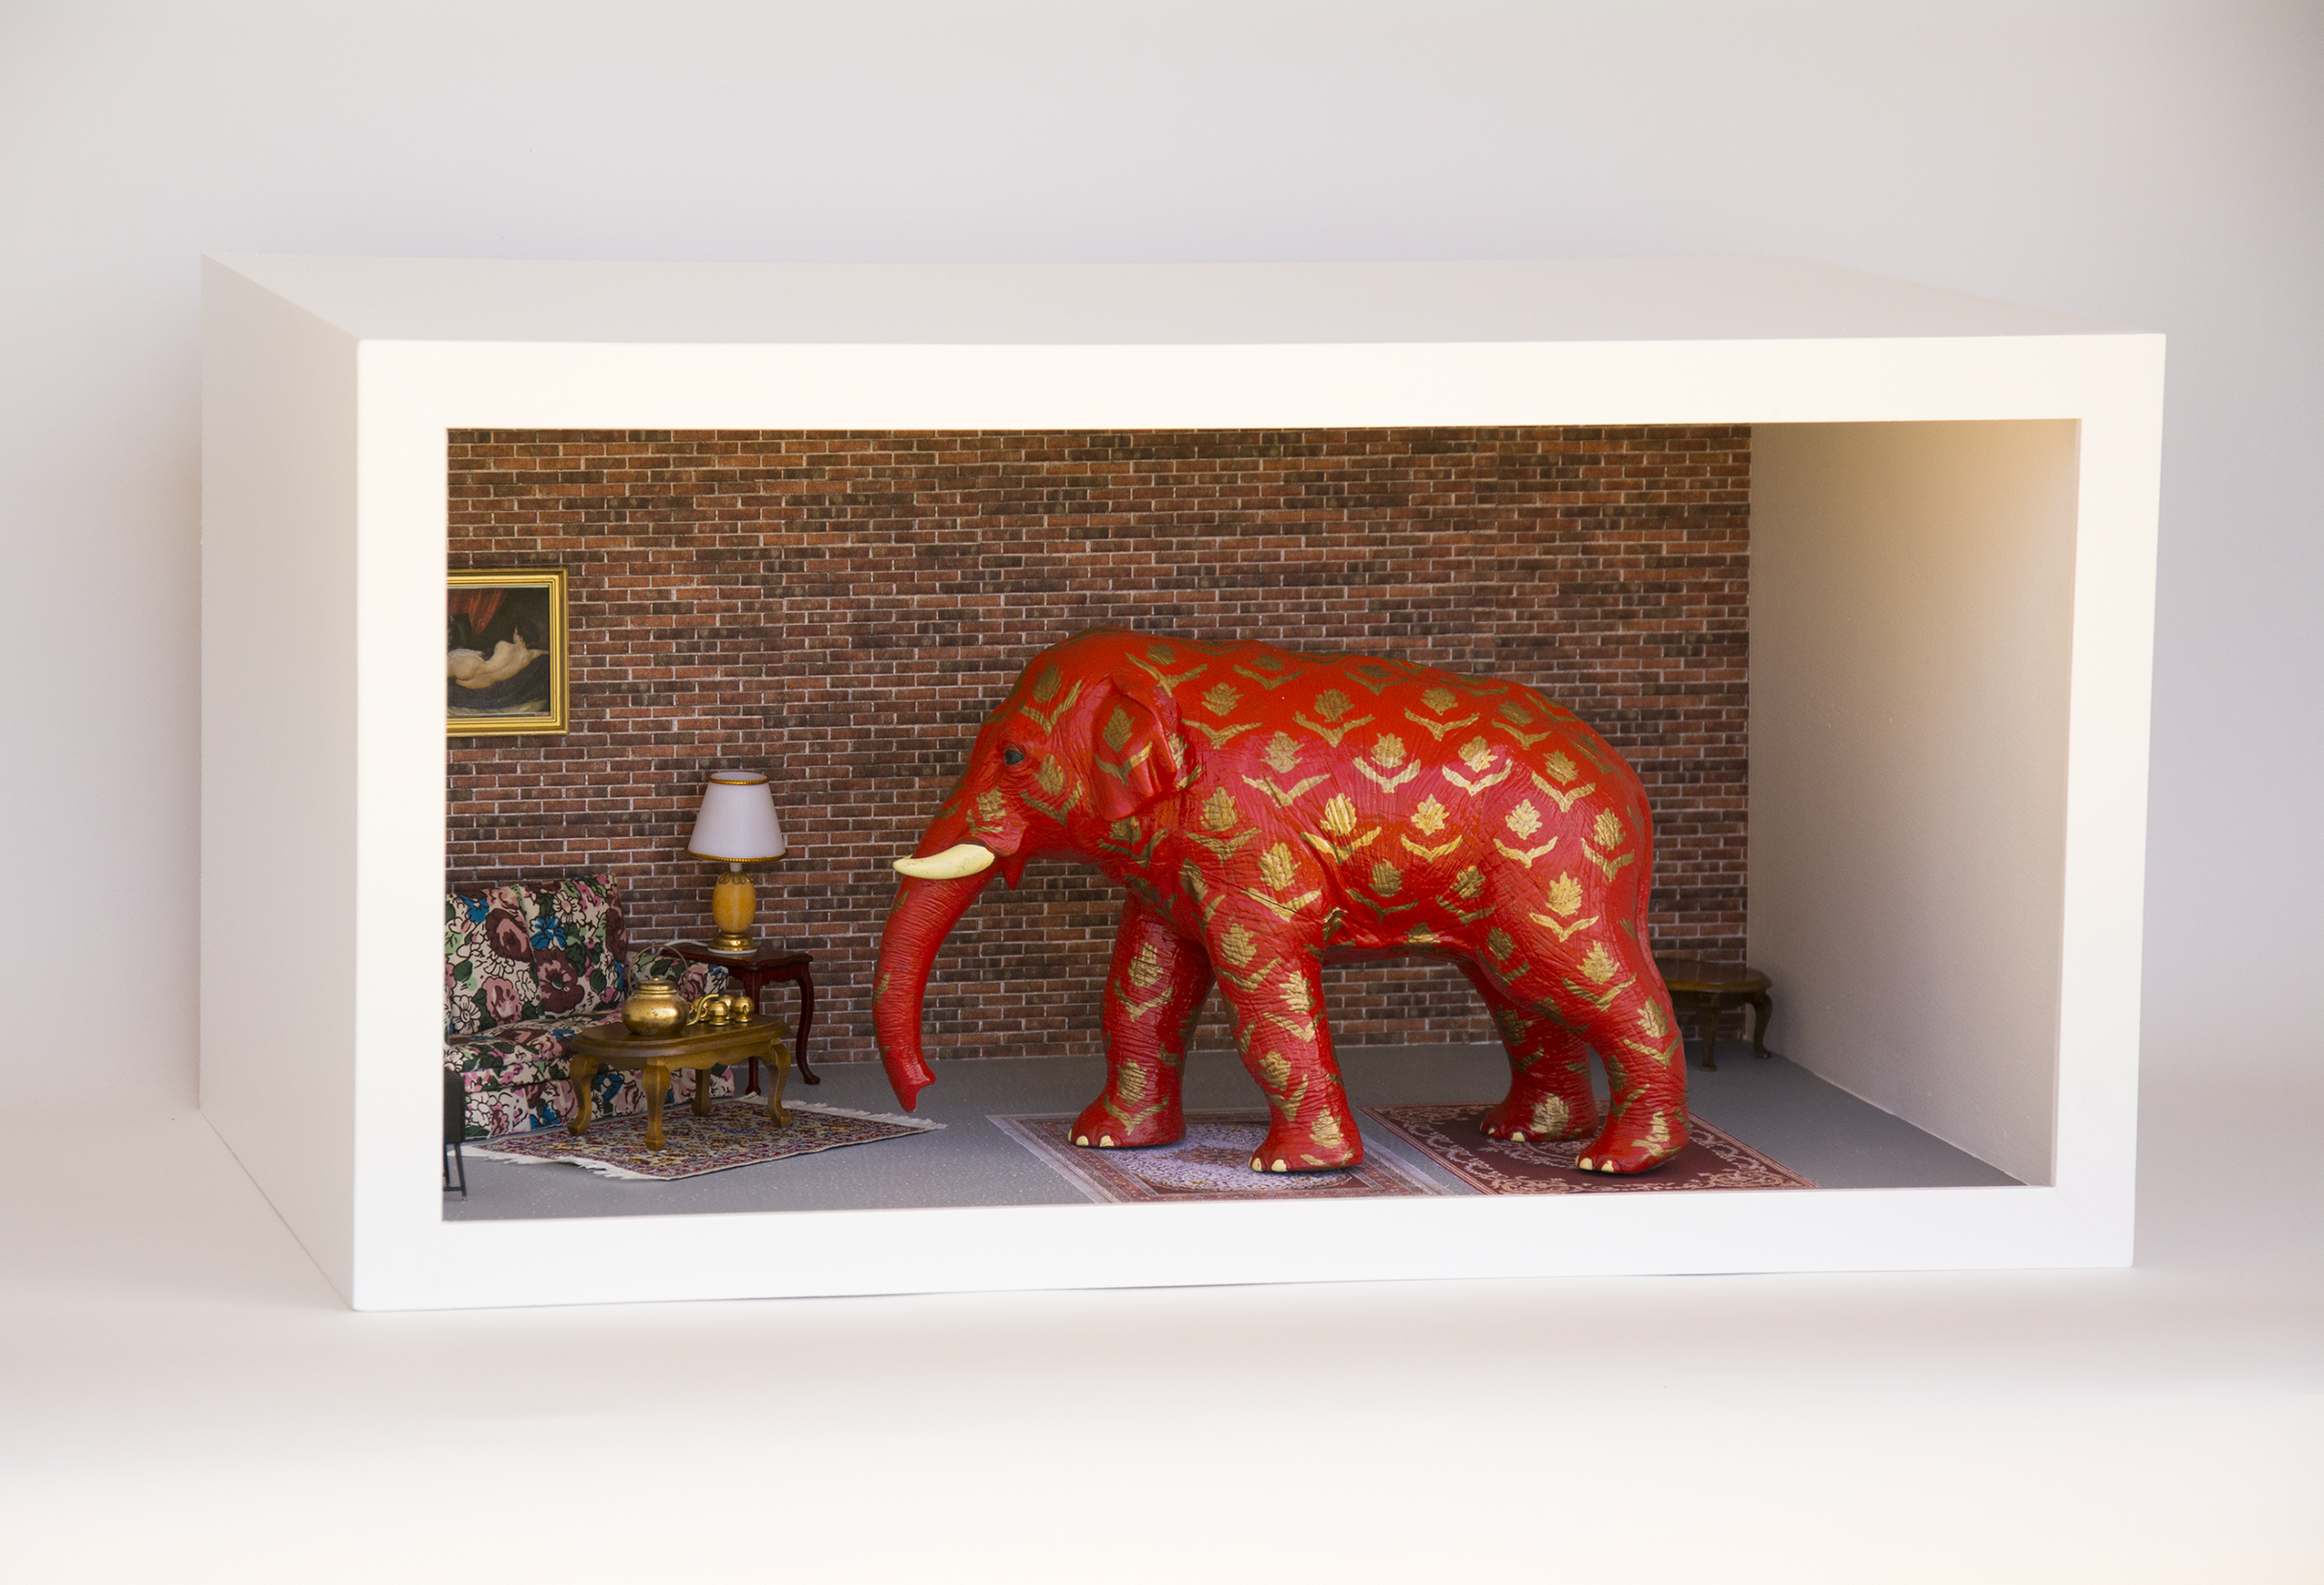 COLL.EO,  Elephant in a Room  etc, 2014